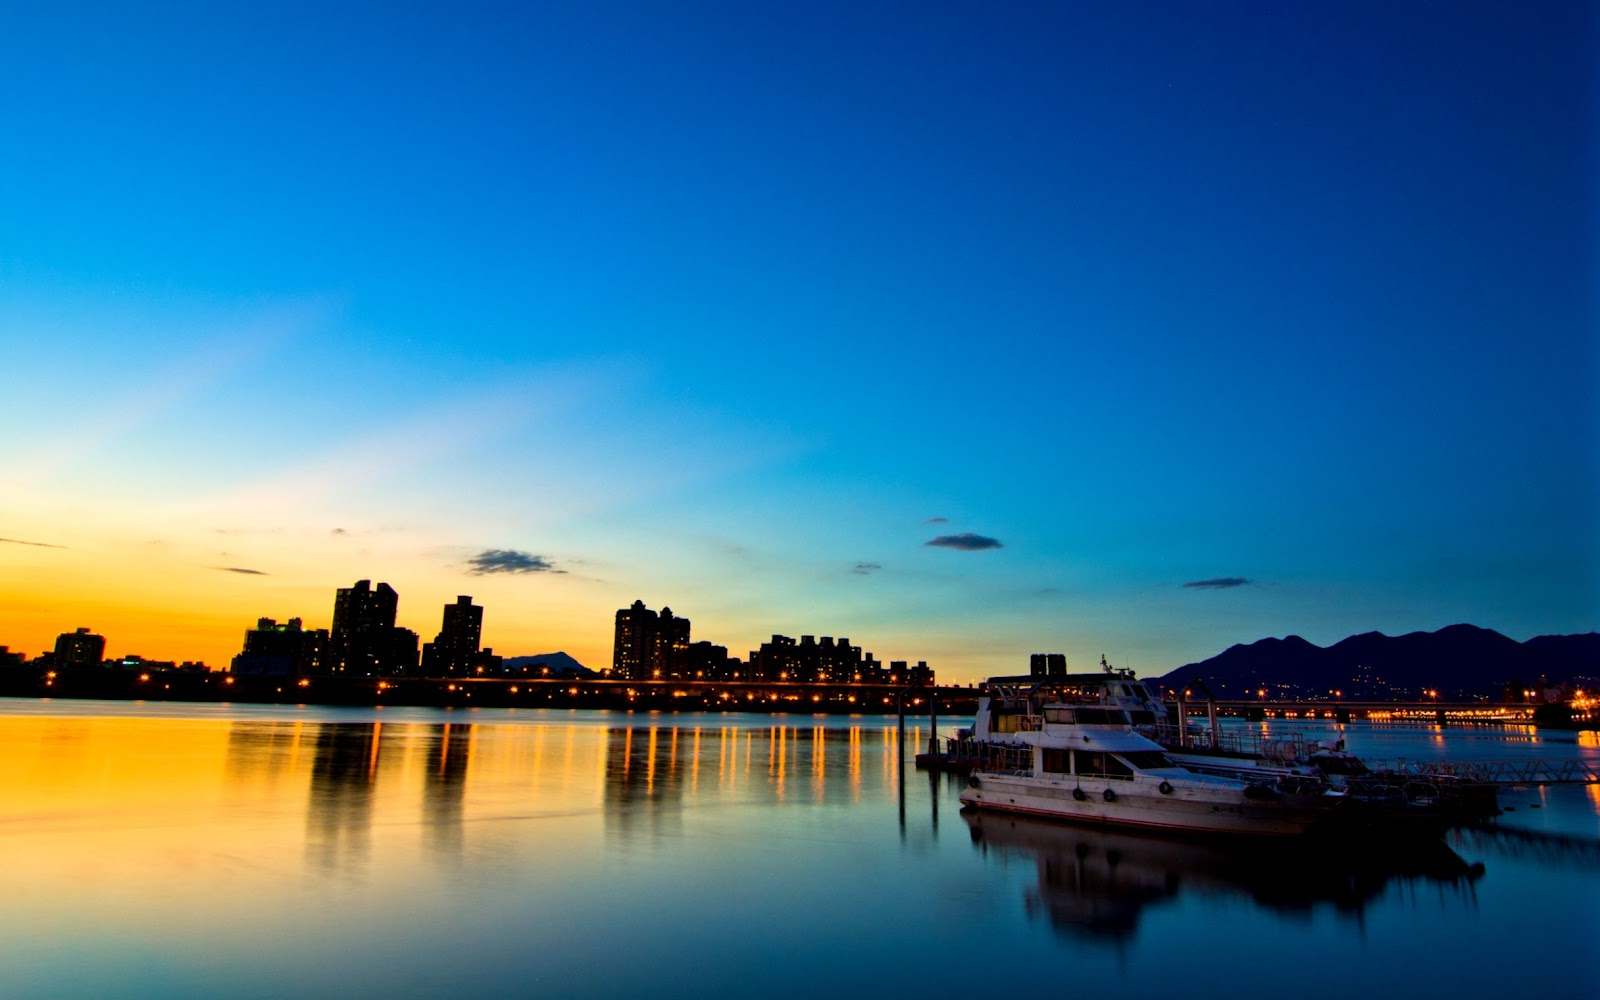 Travel Sunset In Taipei Hd Wallpaper Copy Wallpapers